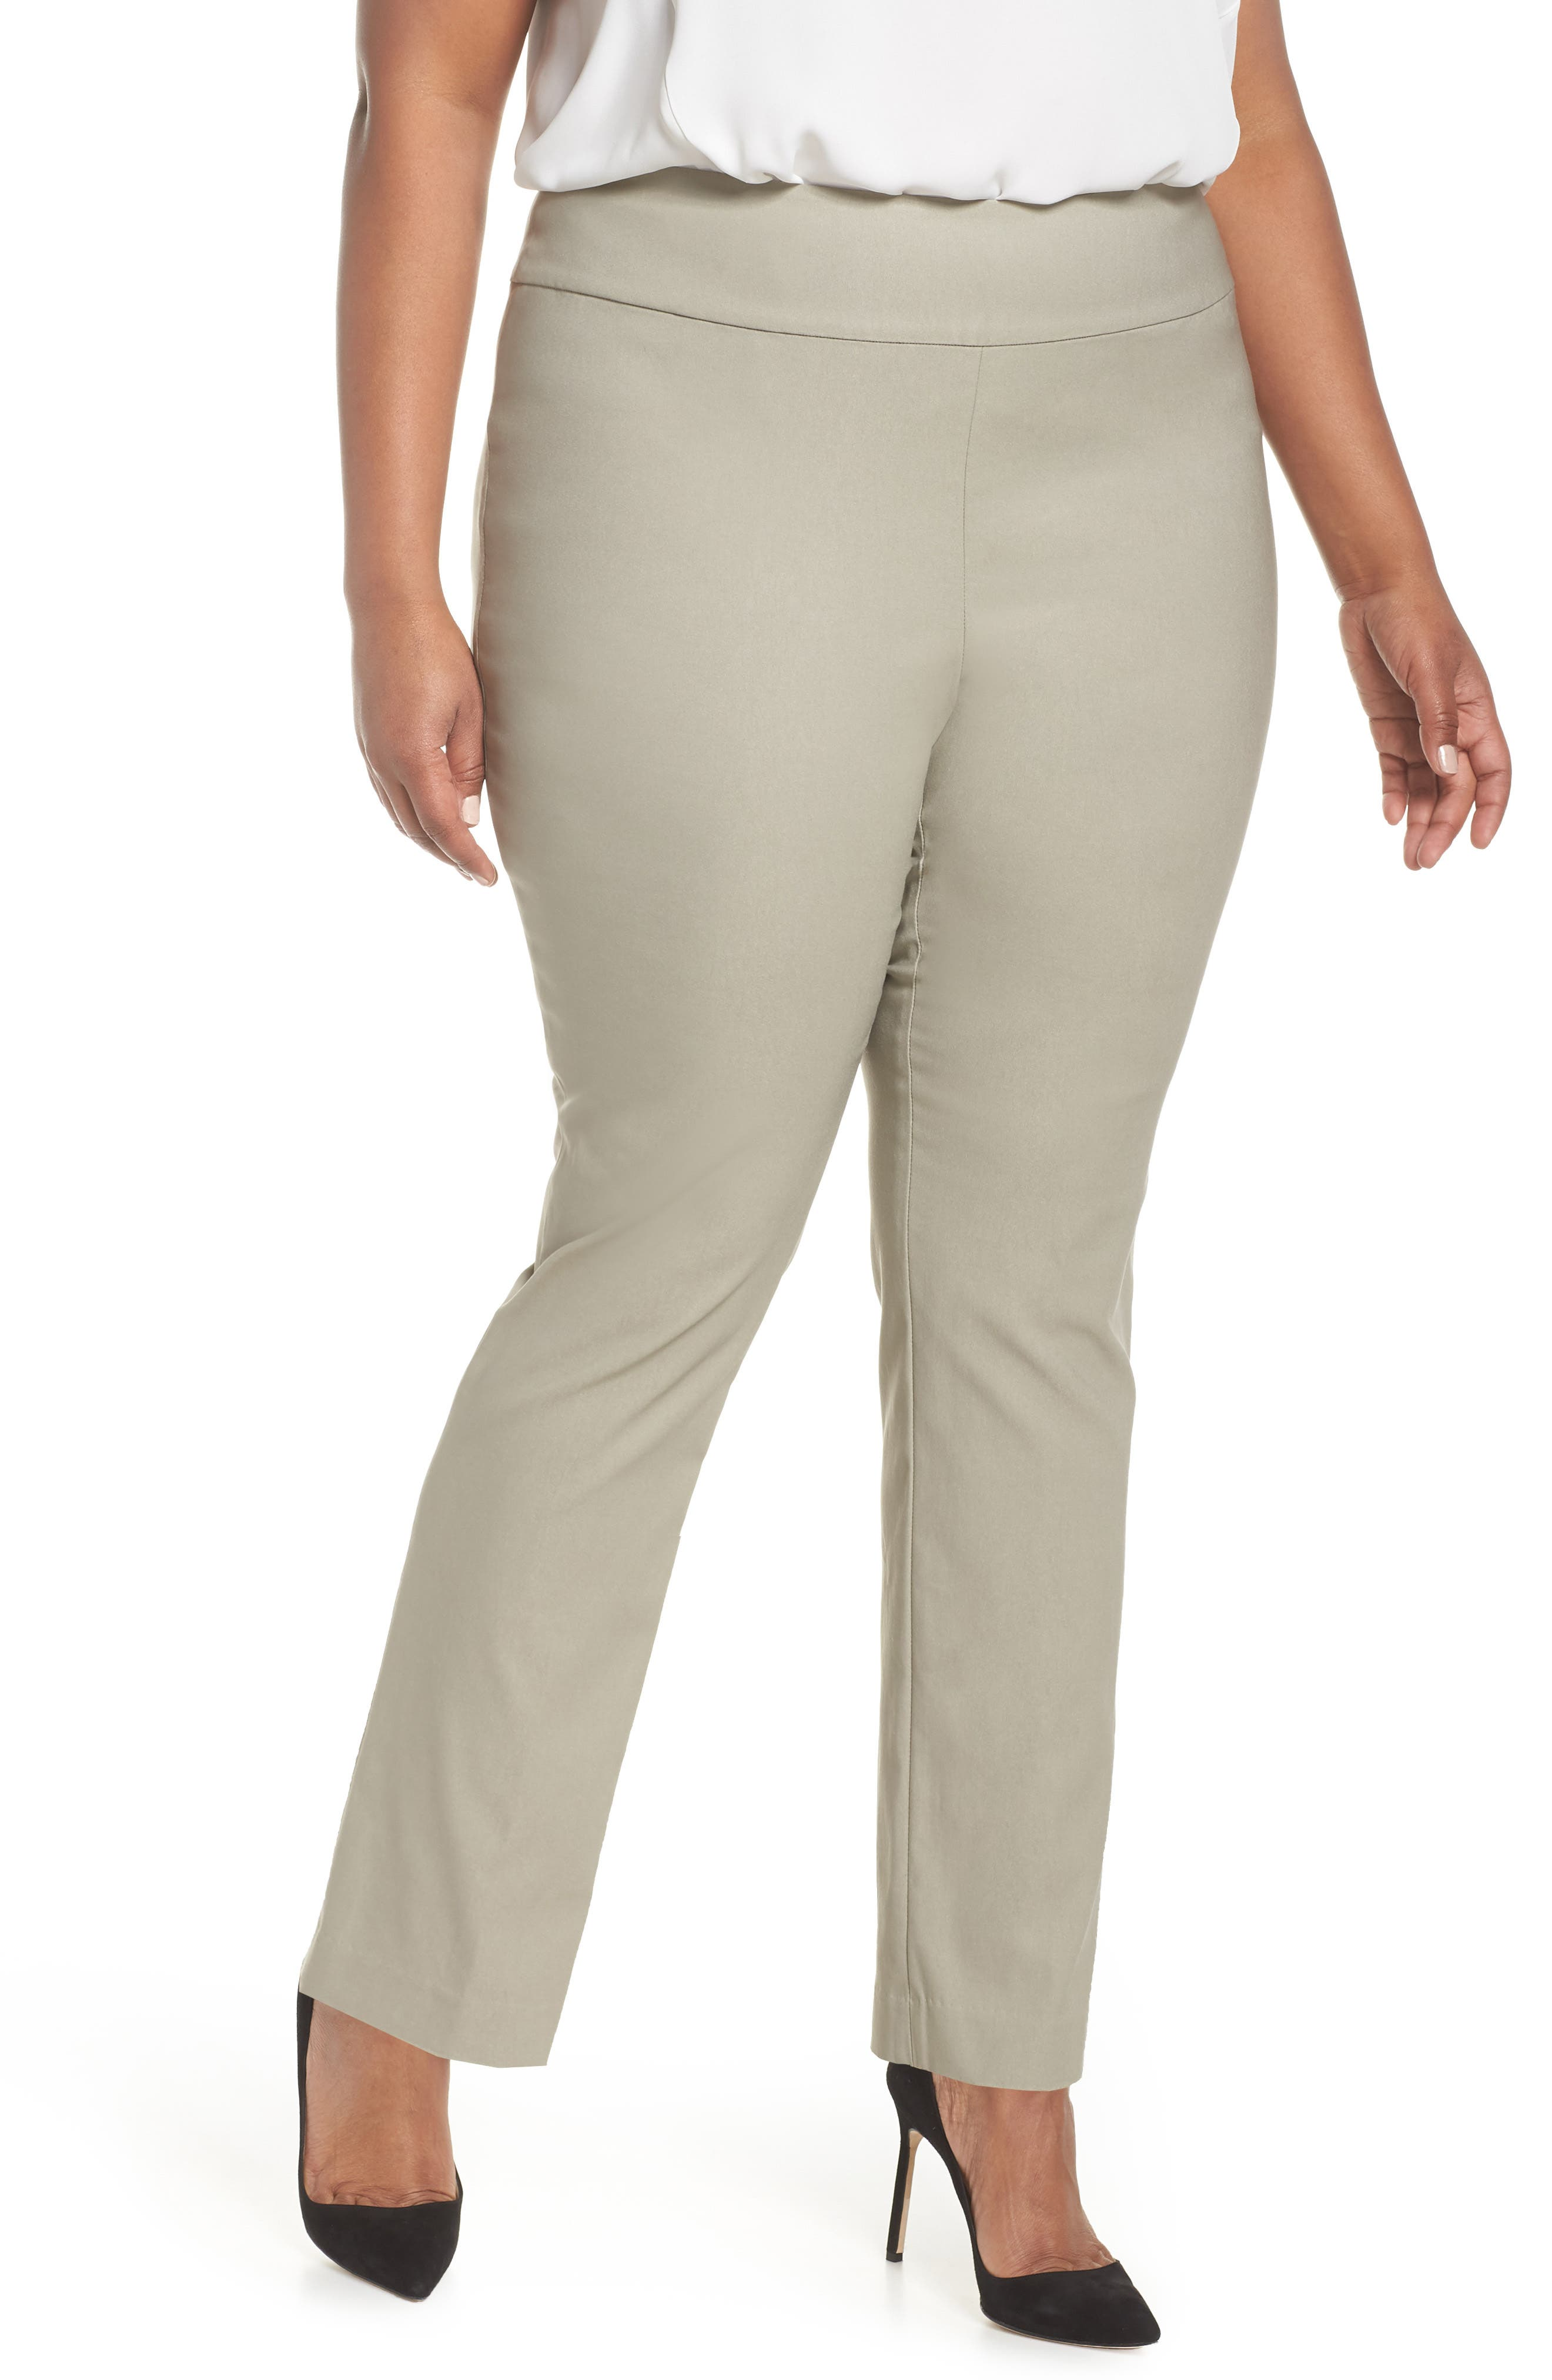 Wonderstretch Pants,                             Main thumbnail 1, color,                             Flax